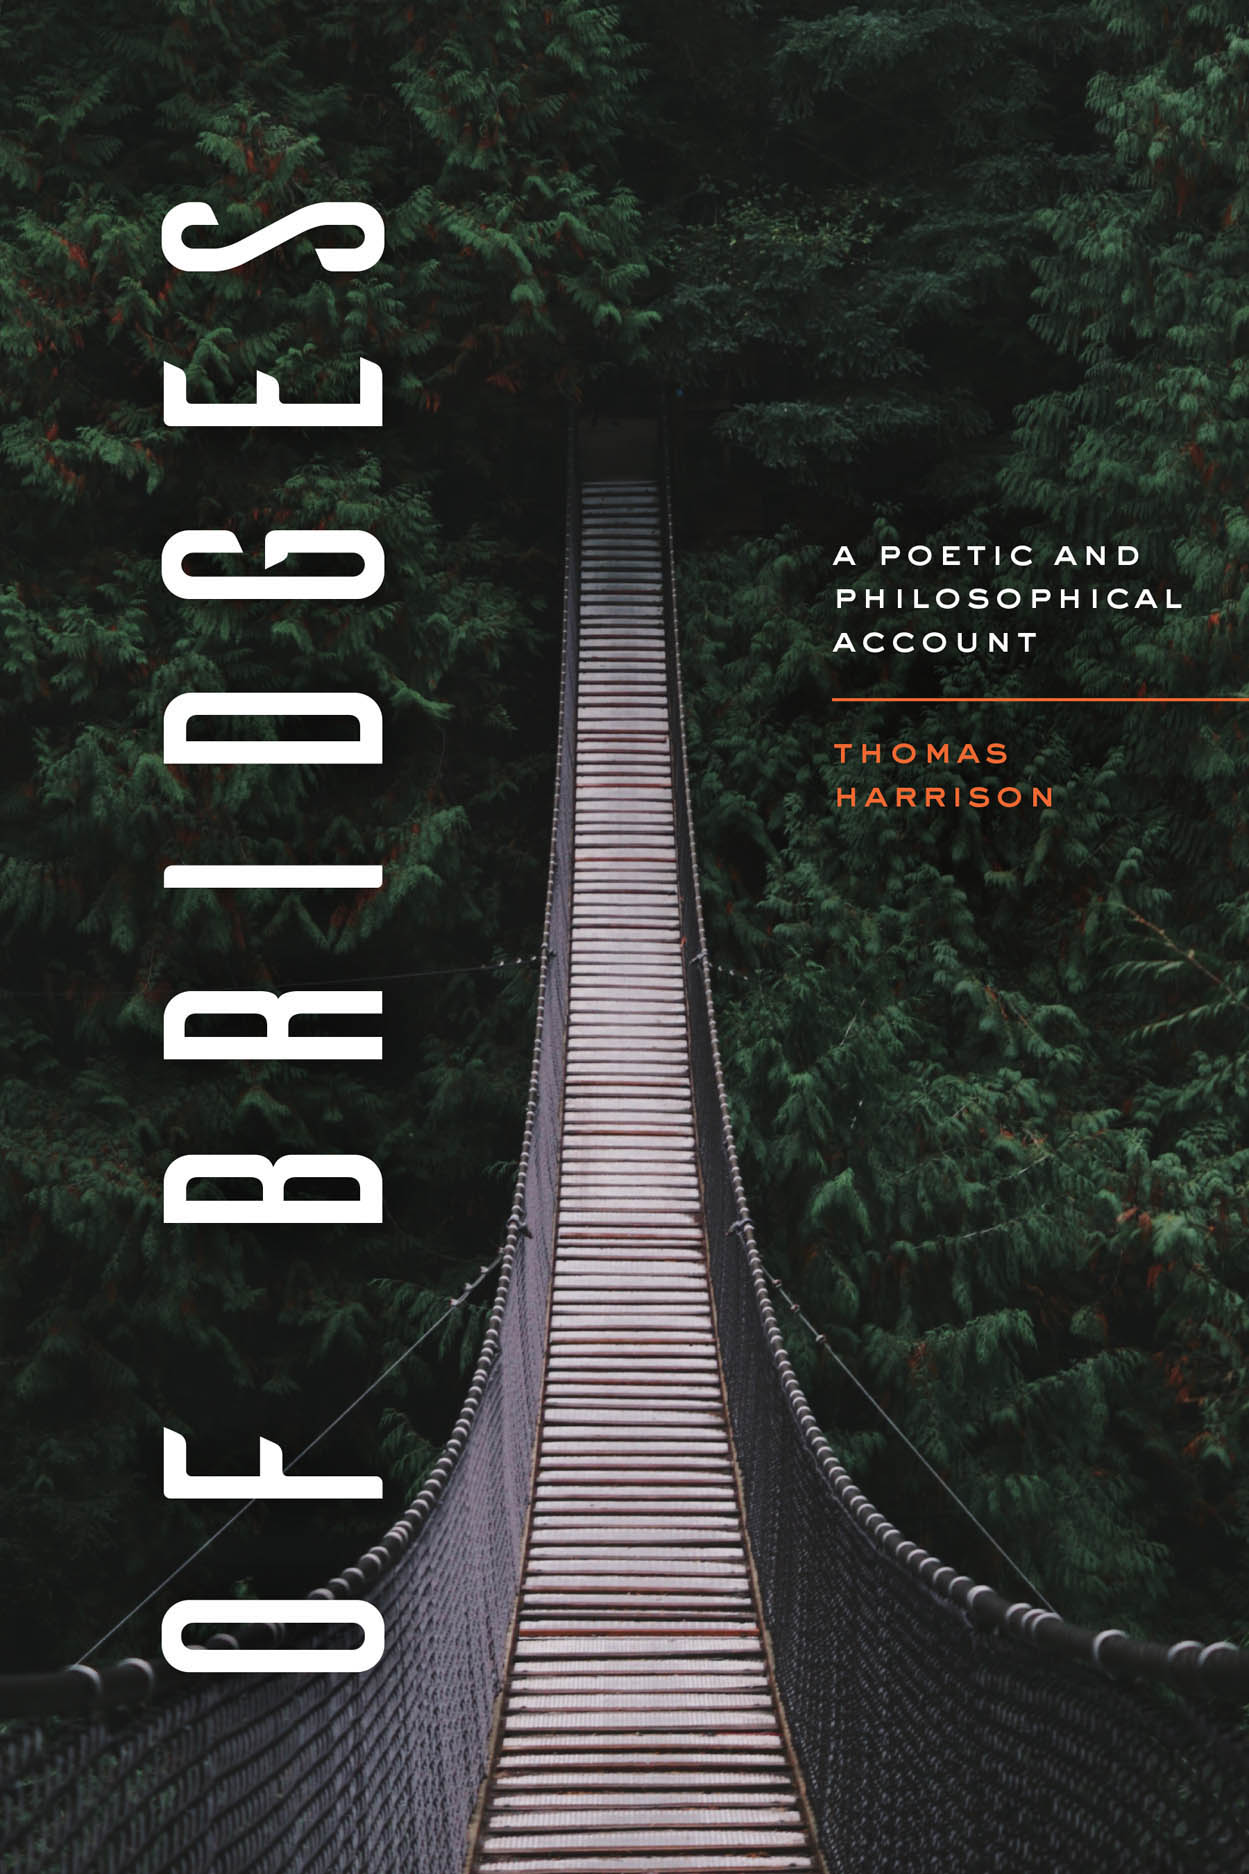 Of Bridges: A Poetic and Philosophical Account